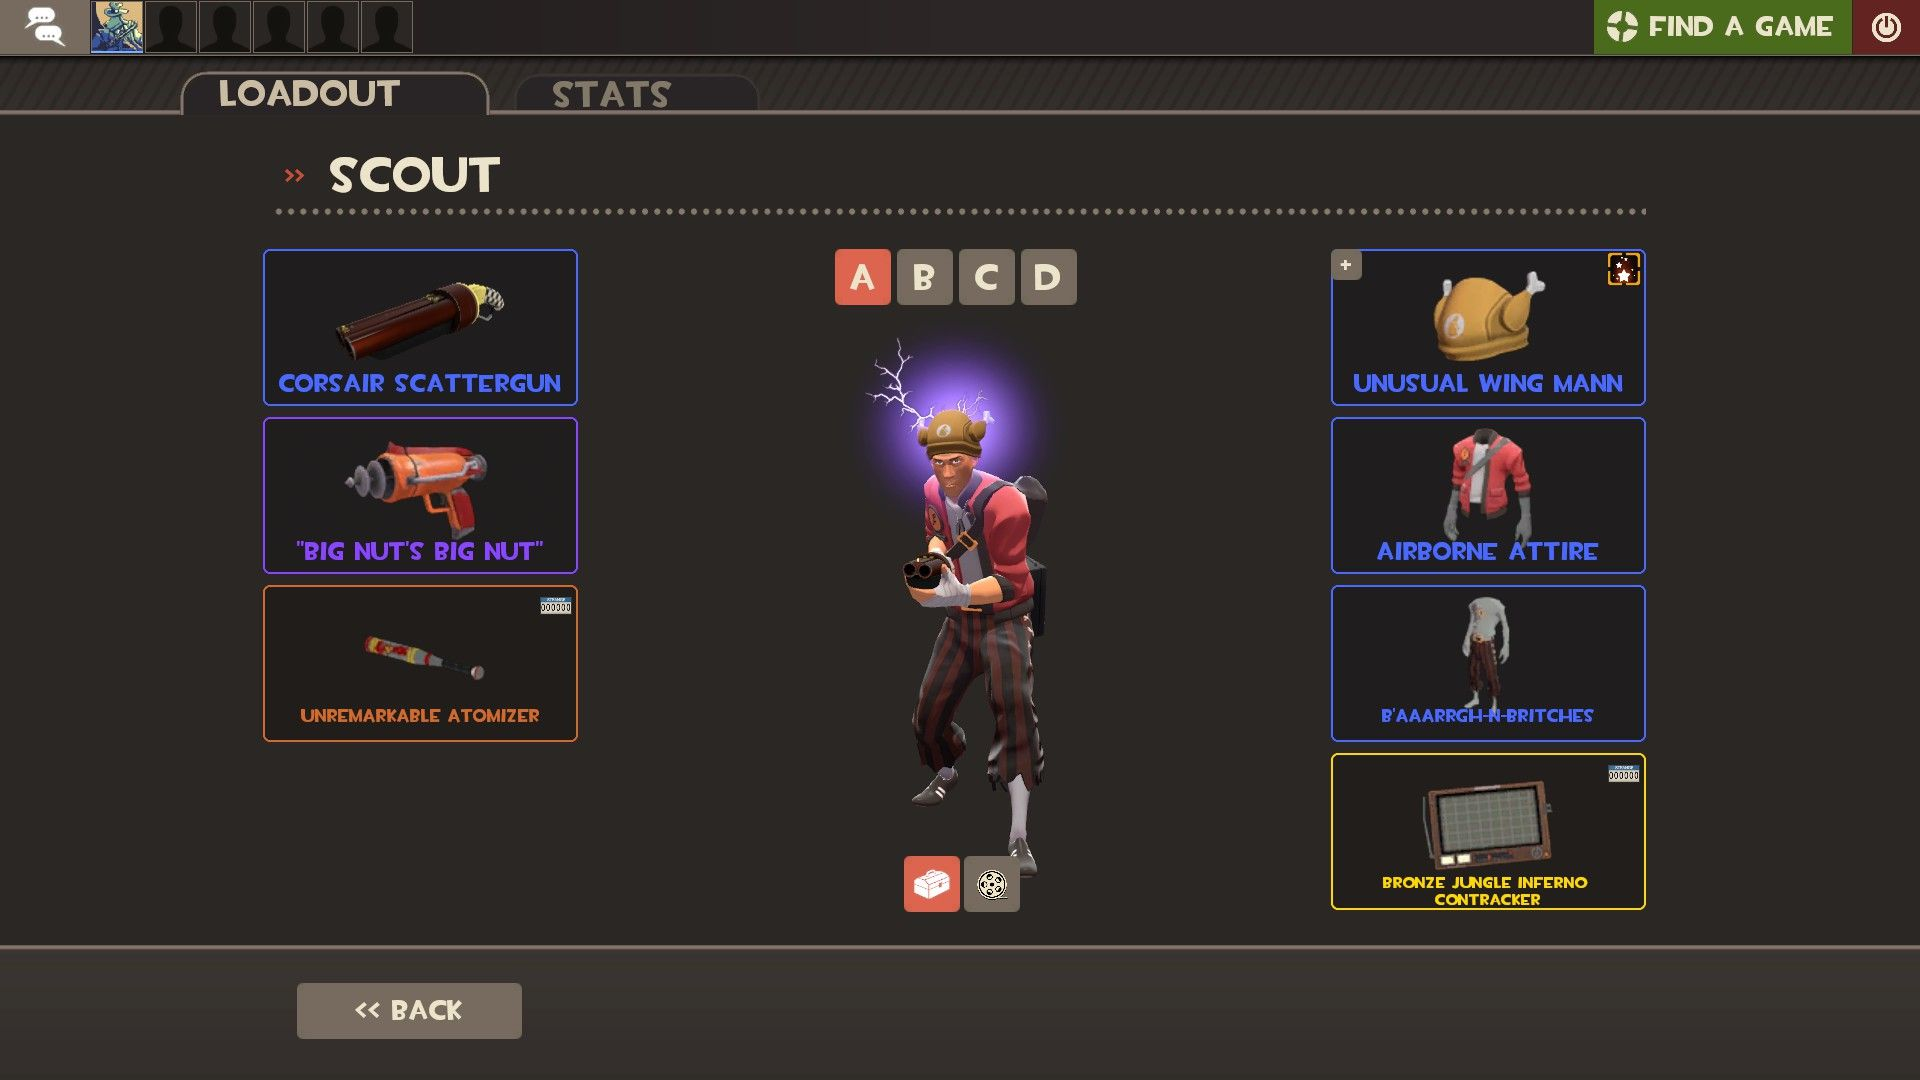 I got my first unusual for 6 and 30 ref im selling it for 10